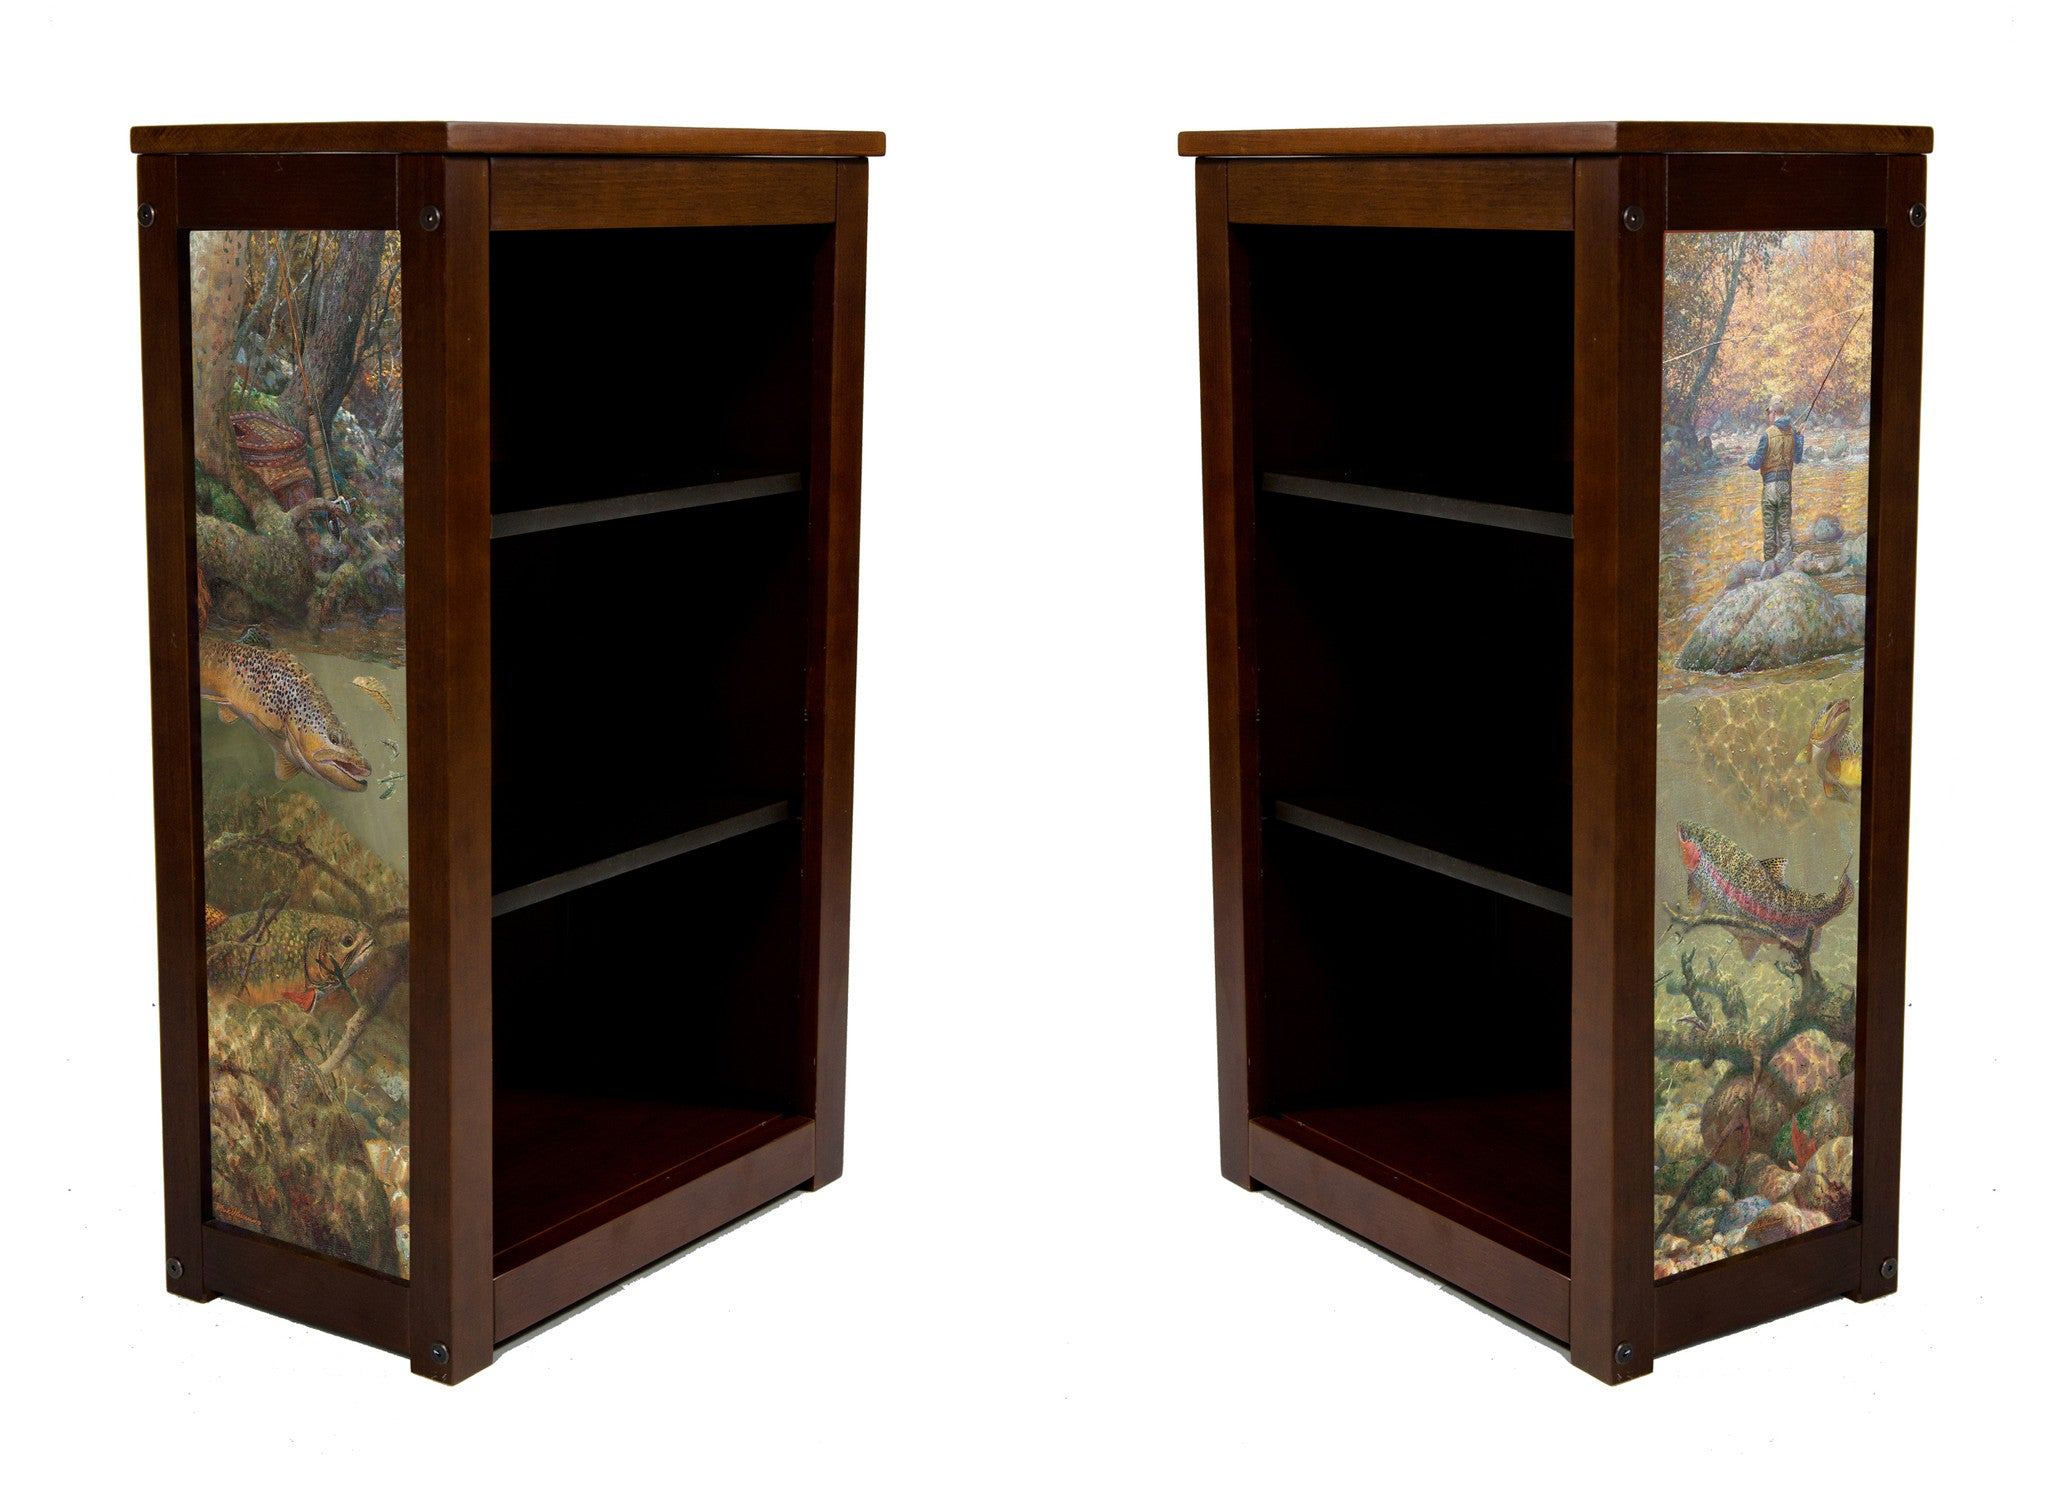 Fly fishing Book Cabinet  with Autumn Dream Day by Sussinno